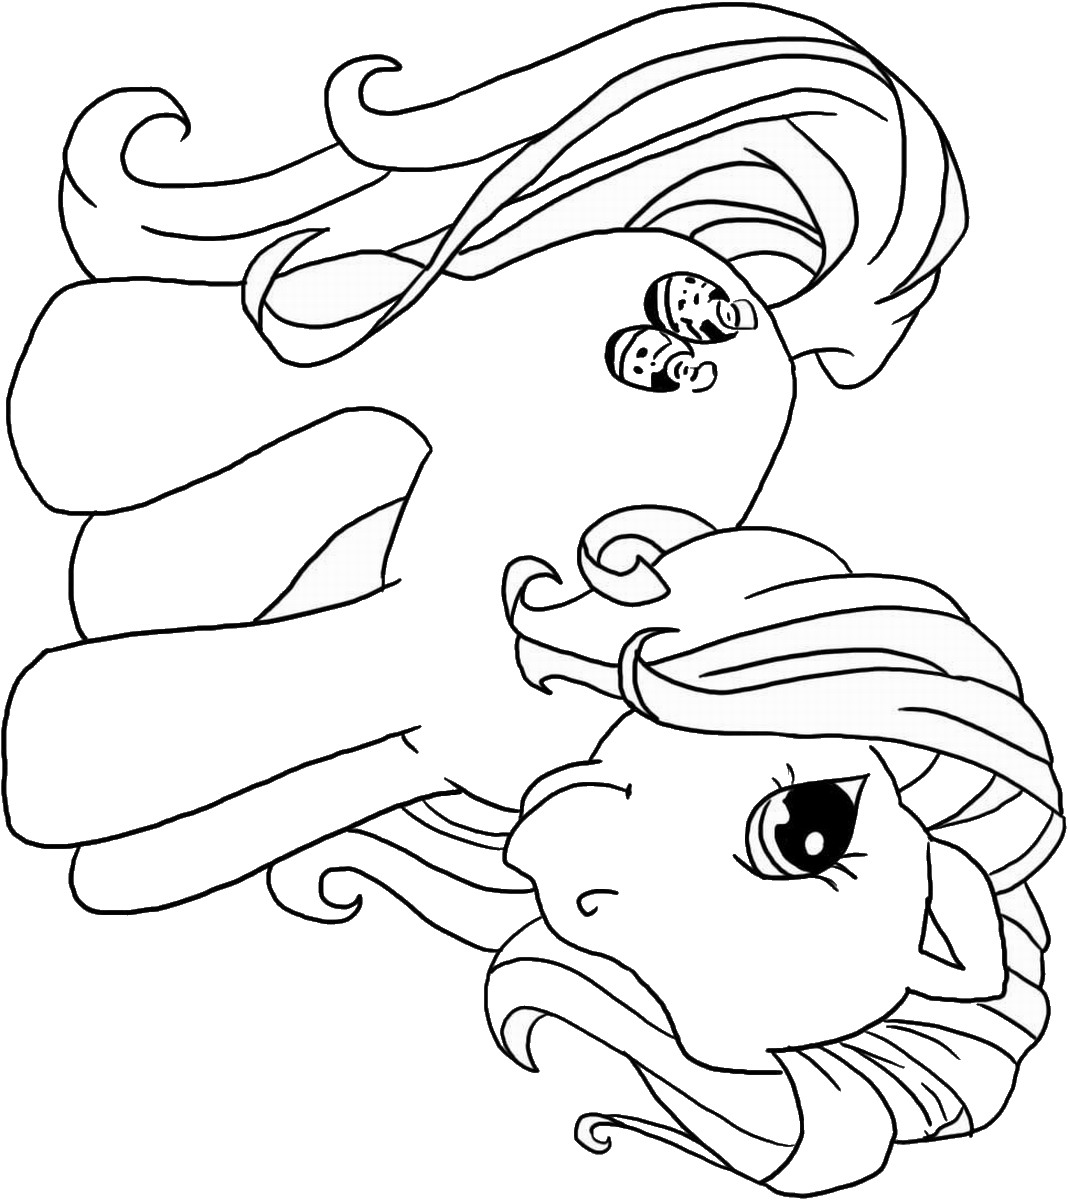 mlp coloring book my little pony the movie coloring pages to download and book mlp coloring